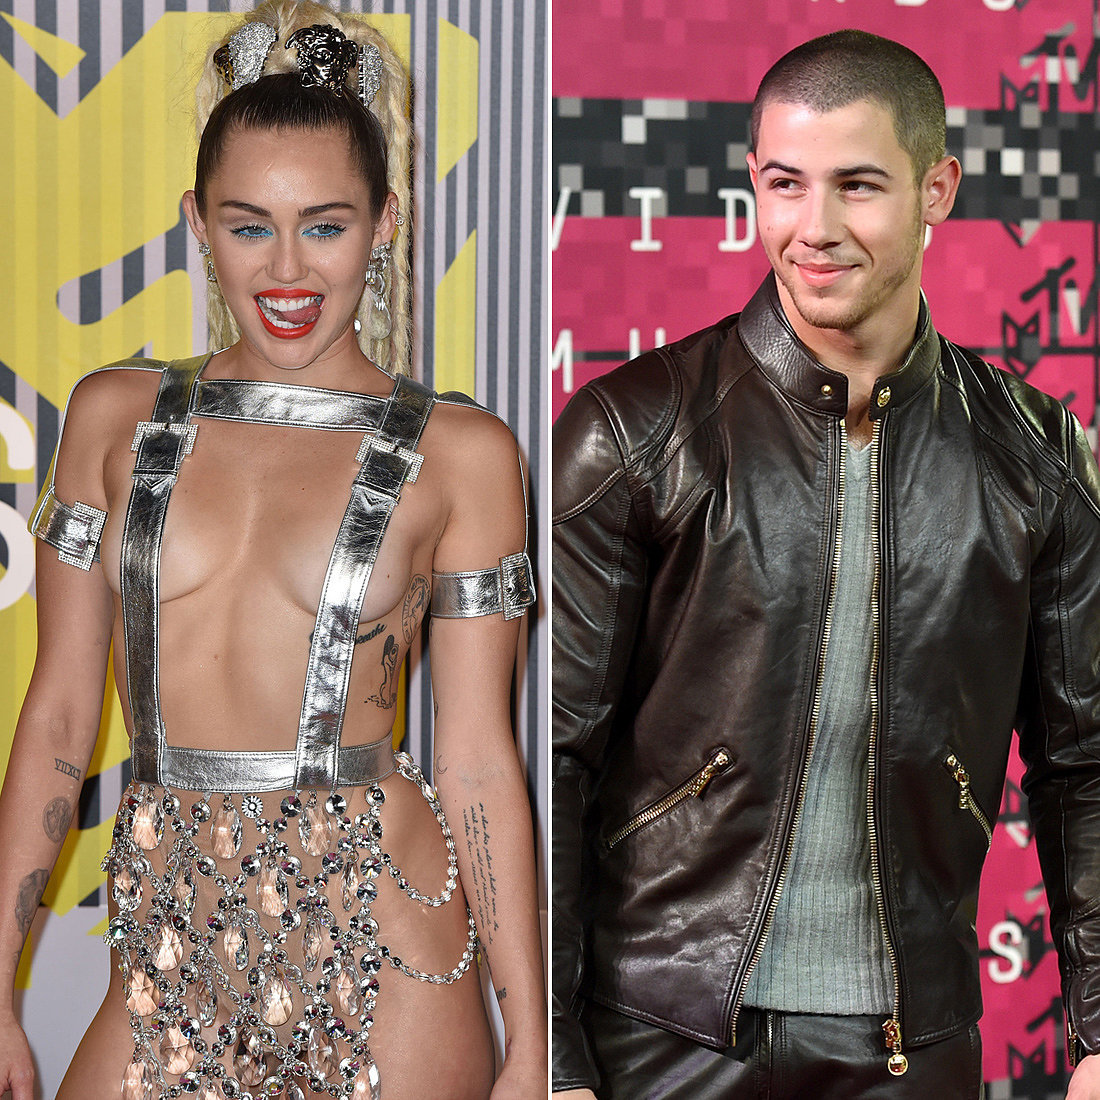 how did nick jonas and miley cyrus meet